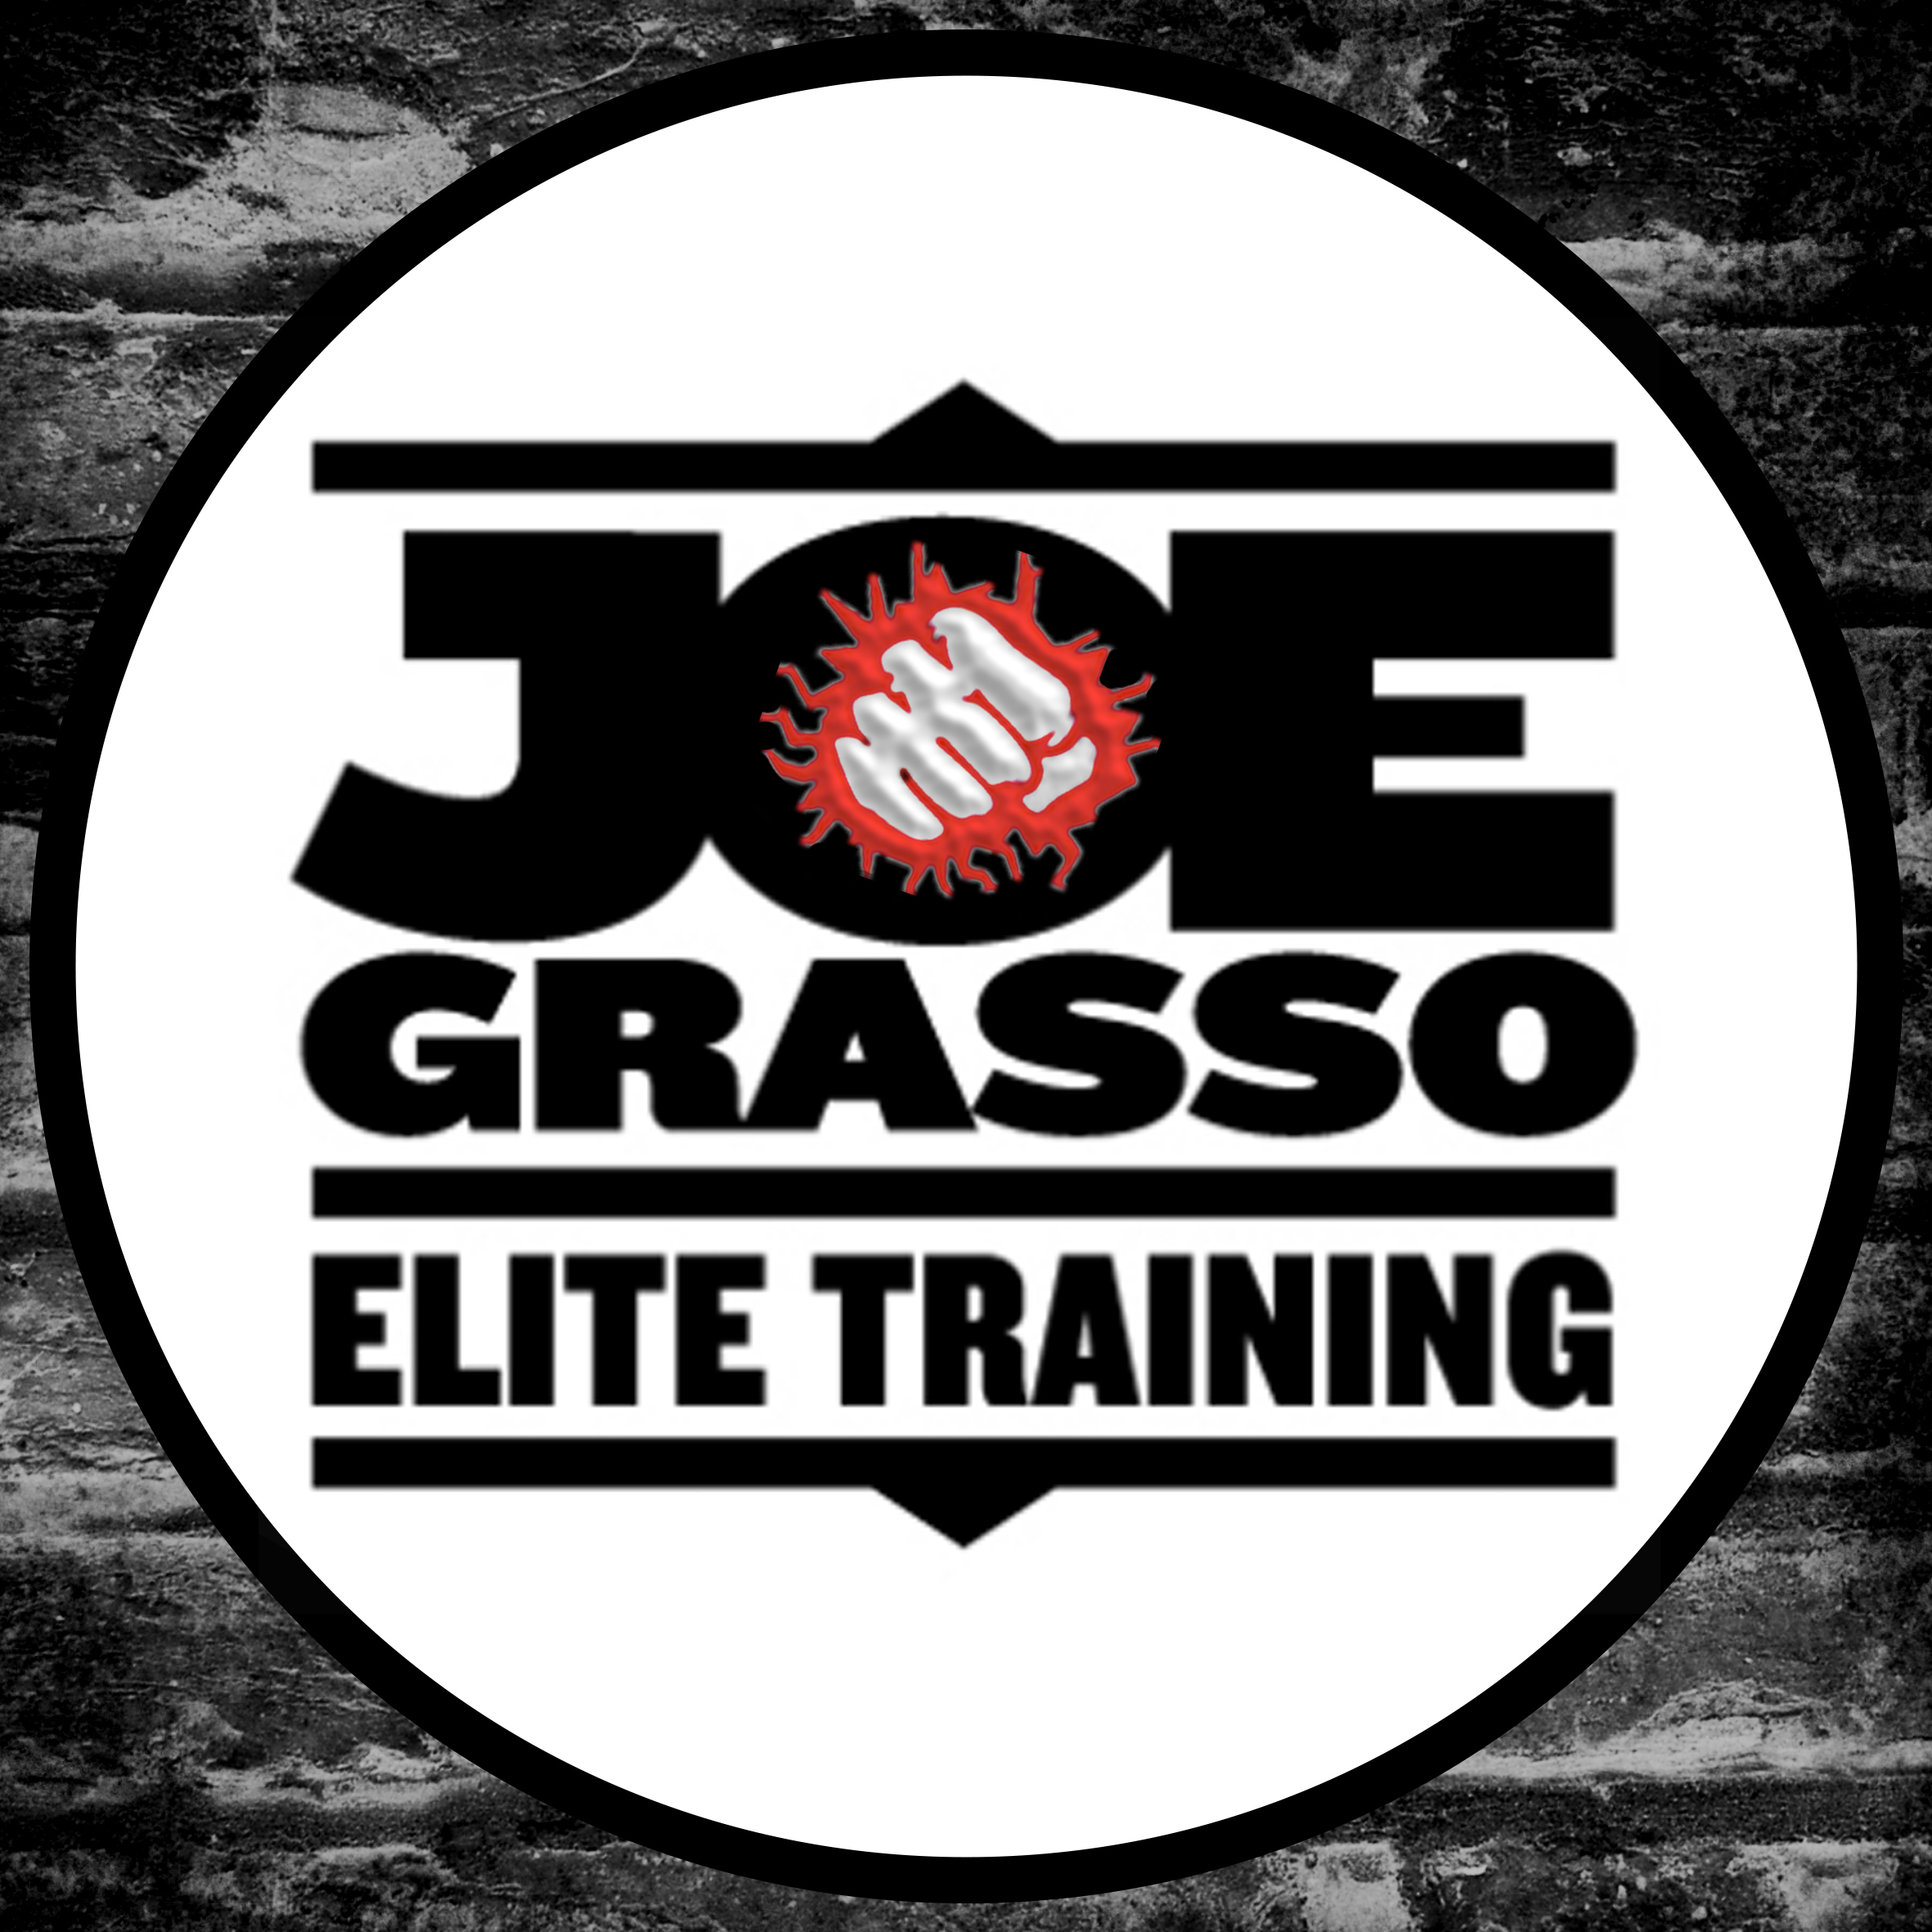 Joe Grasso Elite Training